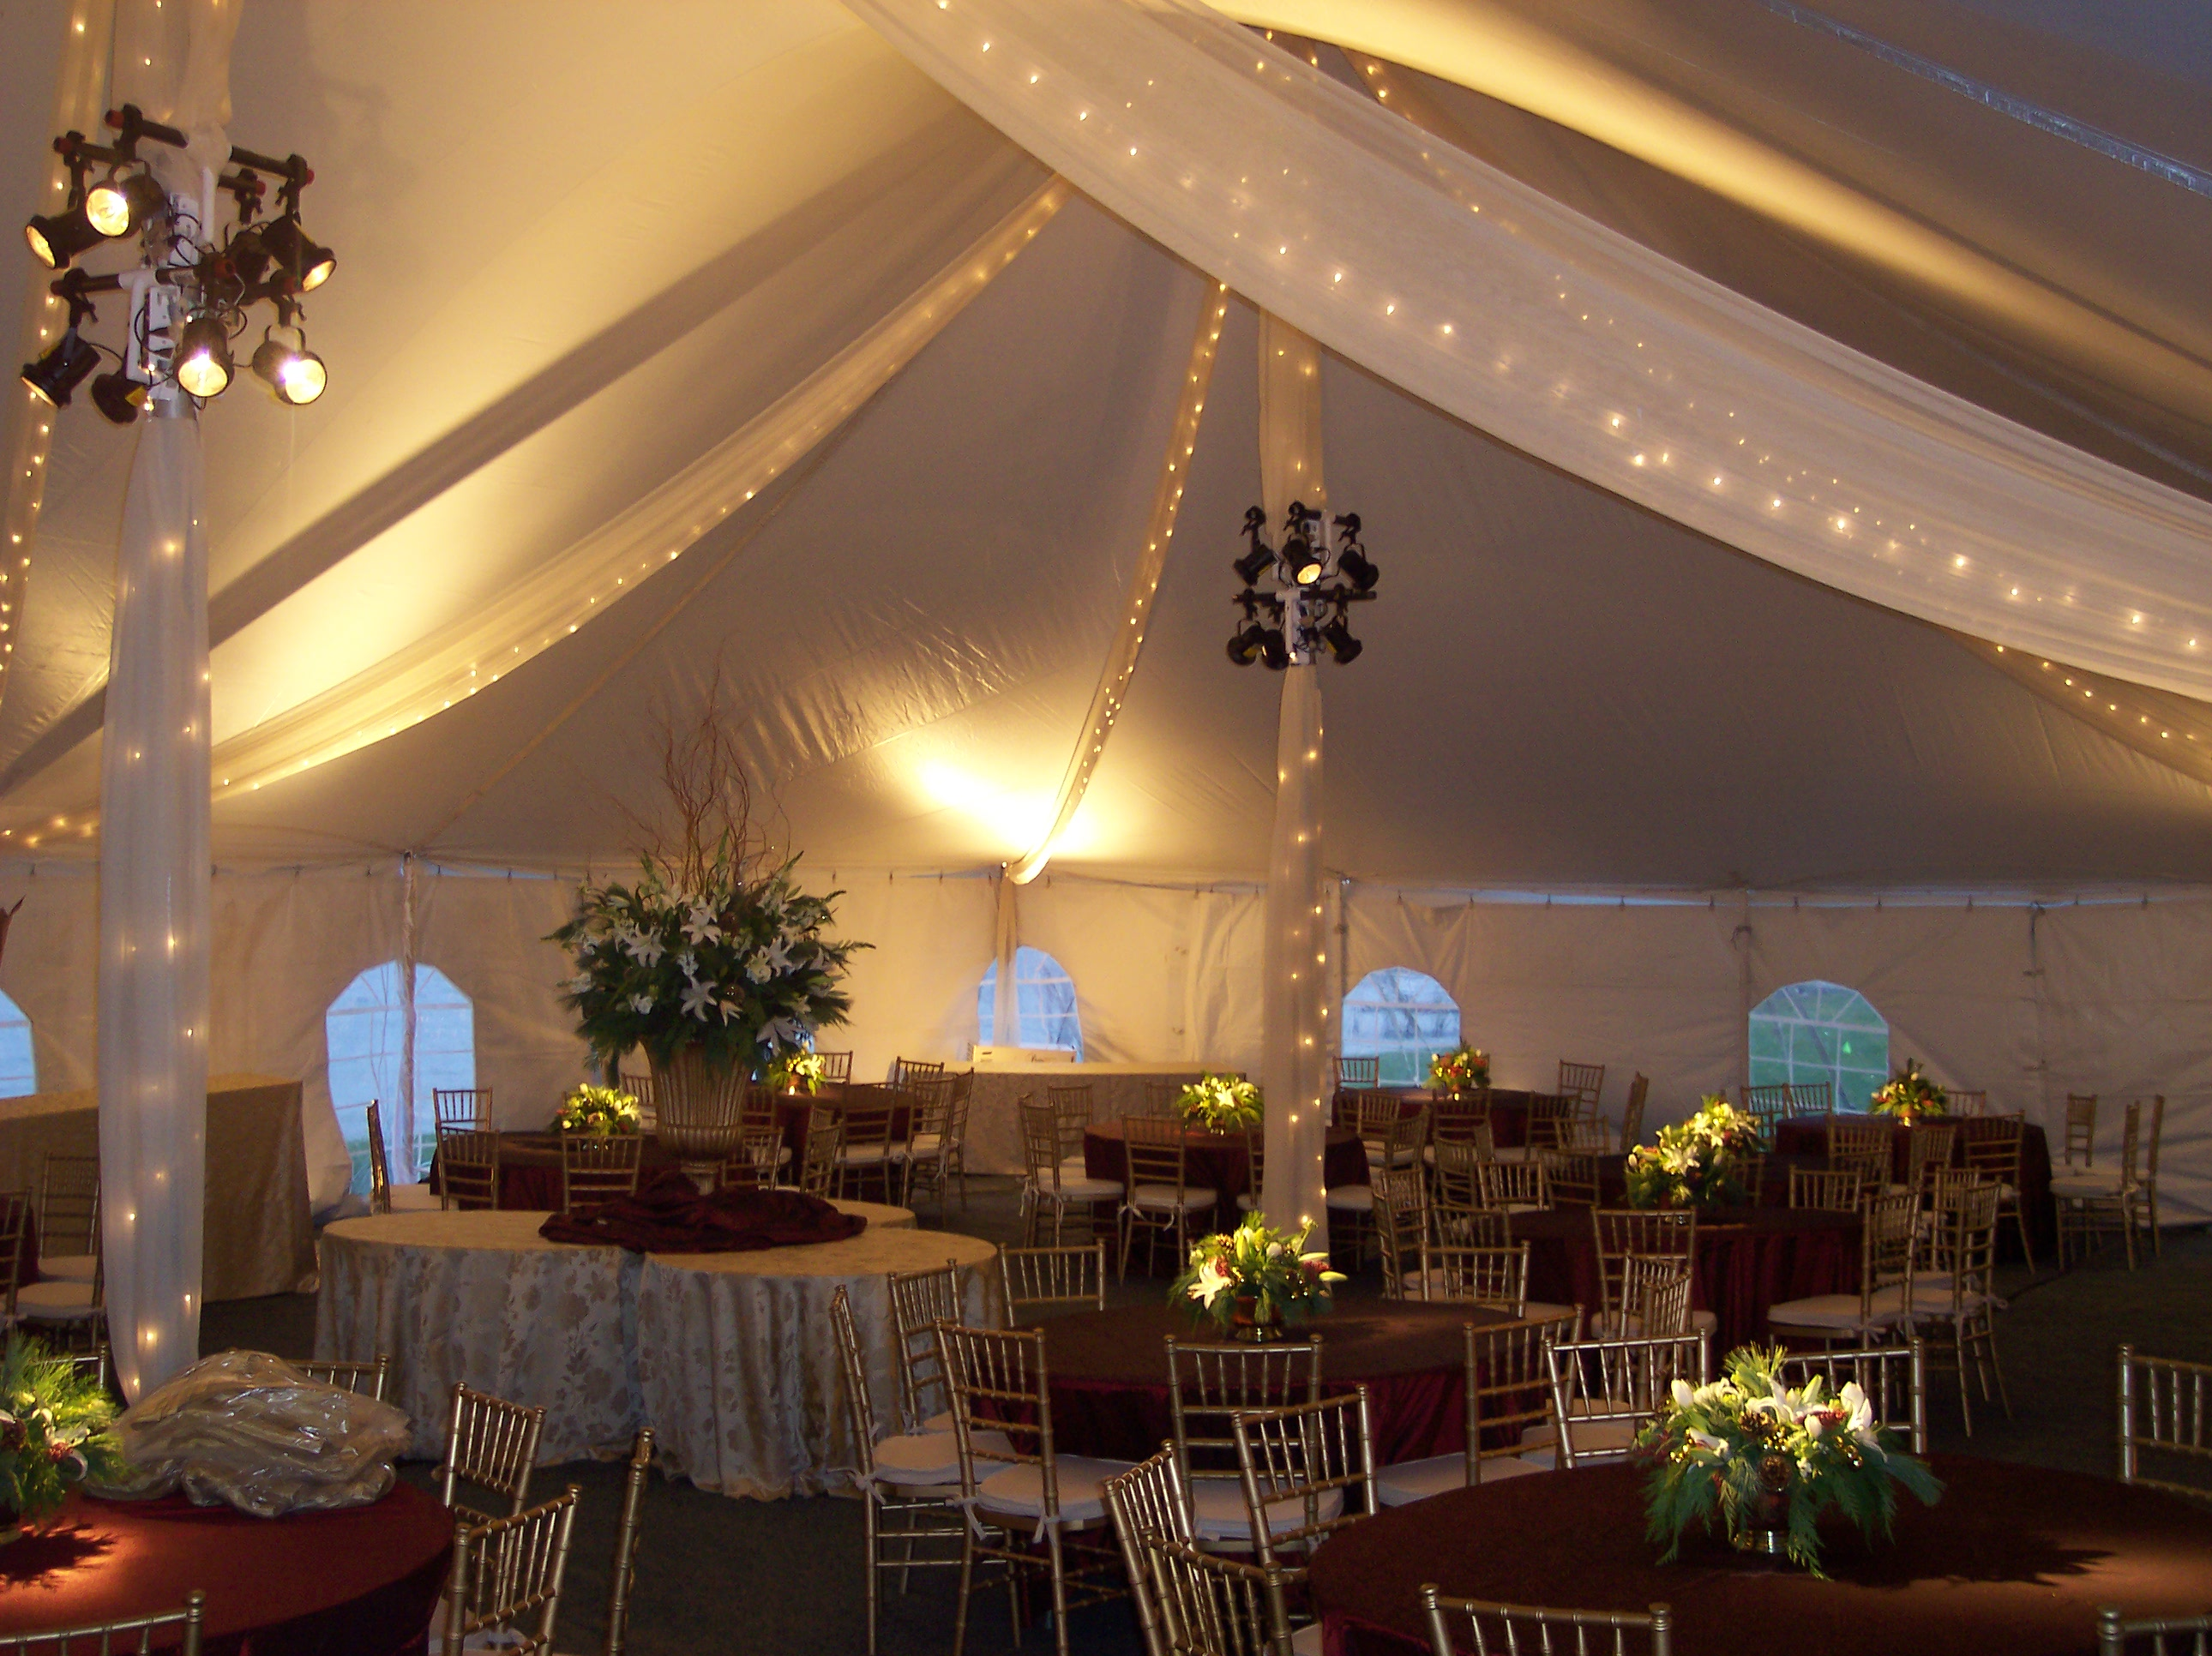 Photo Pole Tents & Photo: Pole Tents |